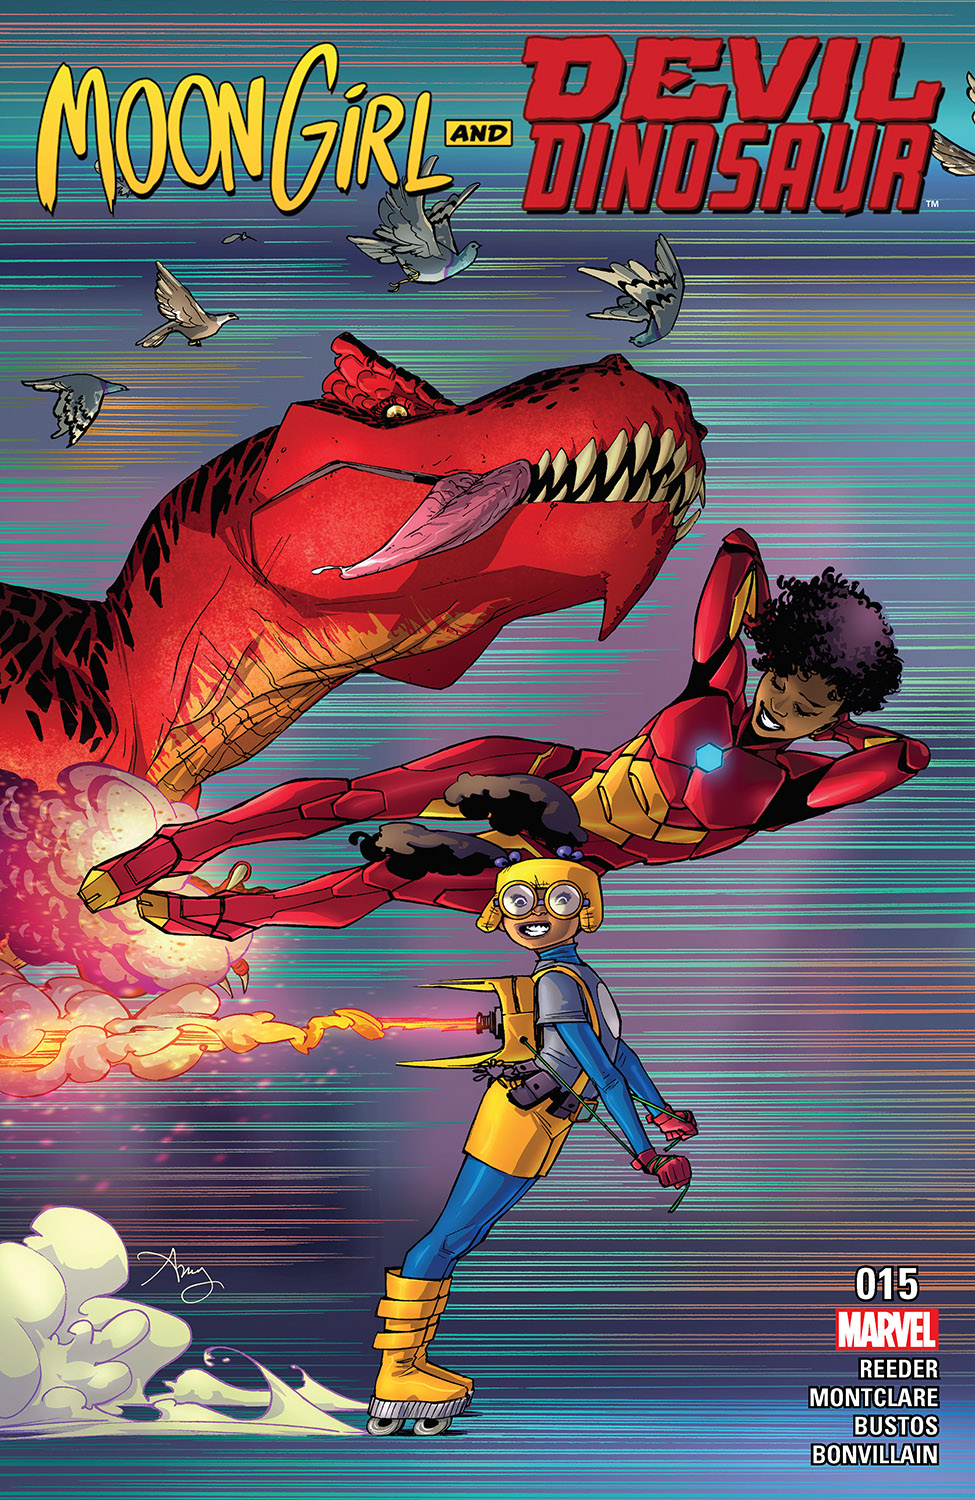 Moon Girl and Devil Dinosaur (2015) #15